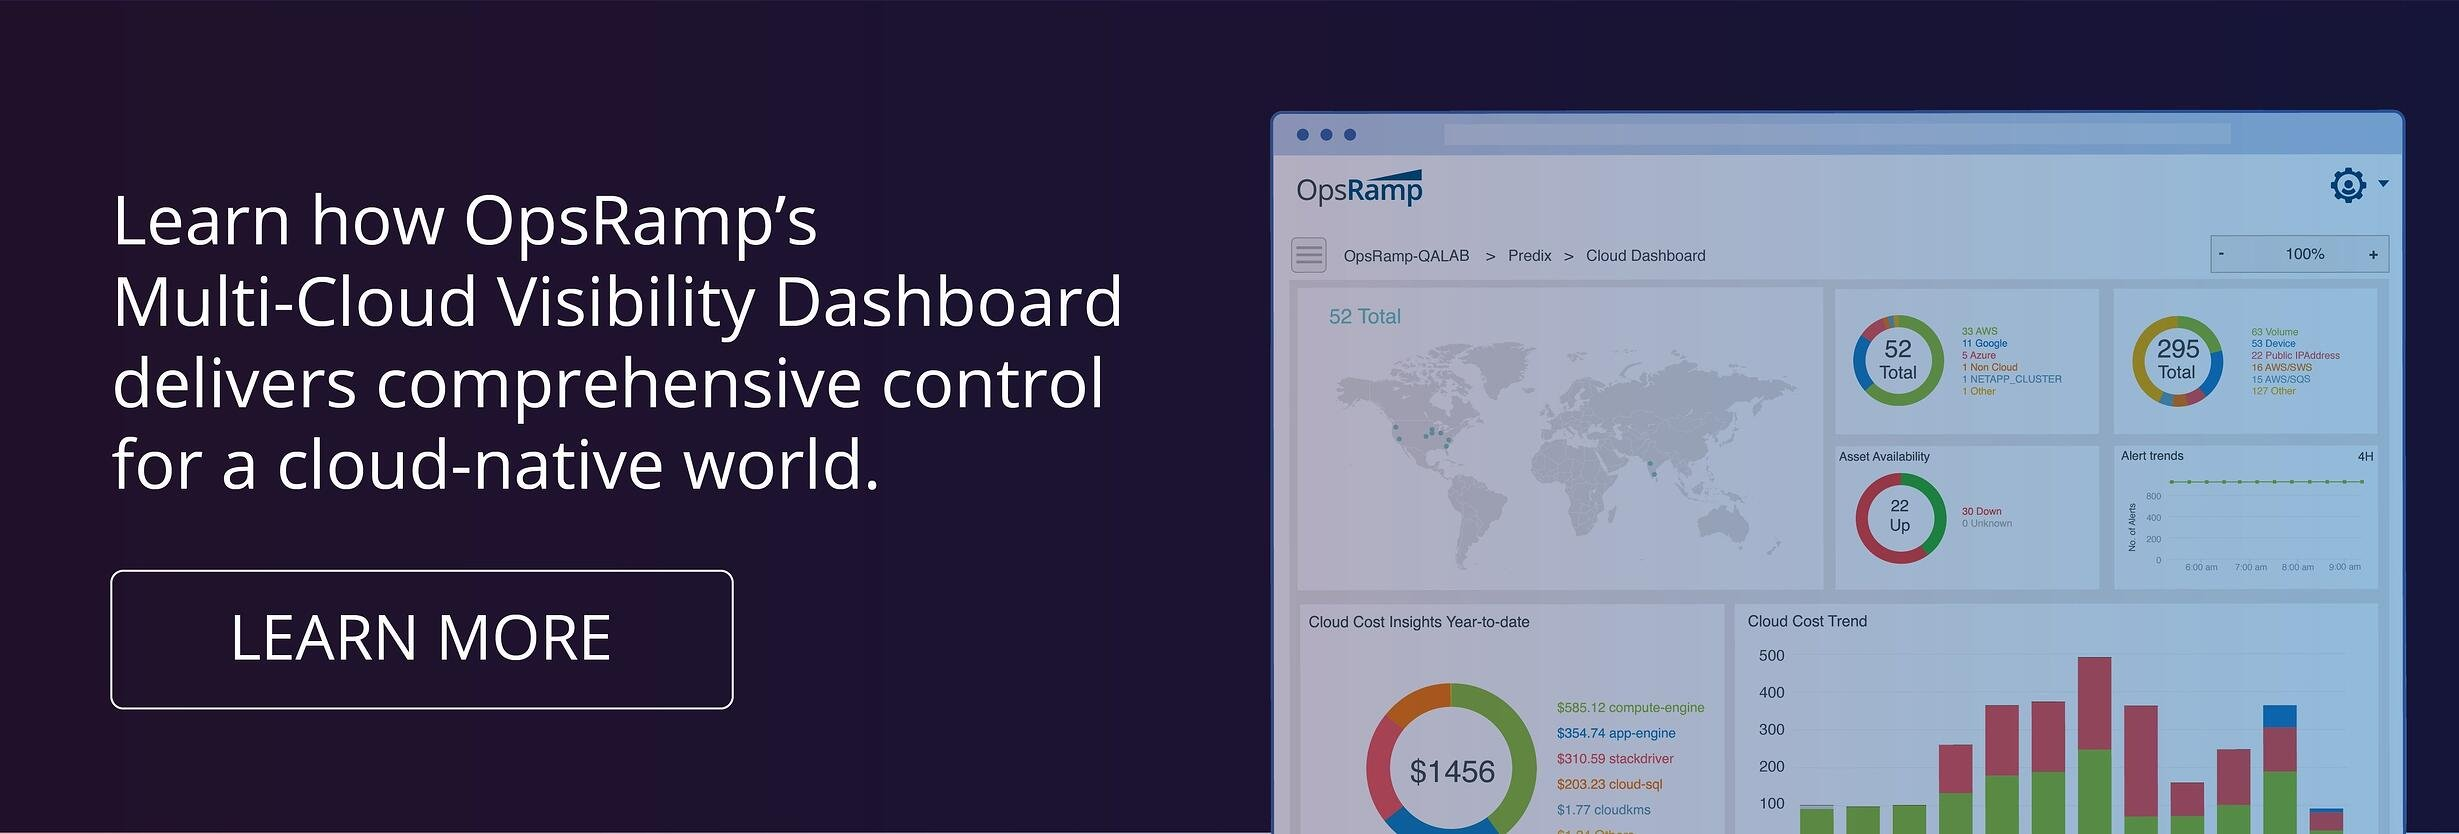 Multi-Cloud Visibility Dashboard